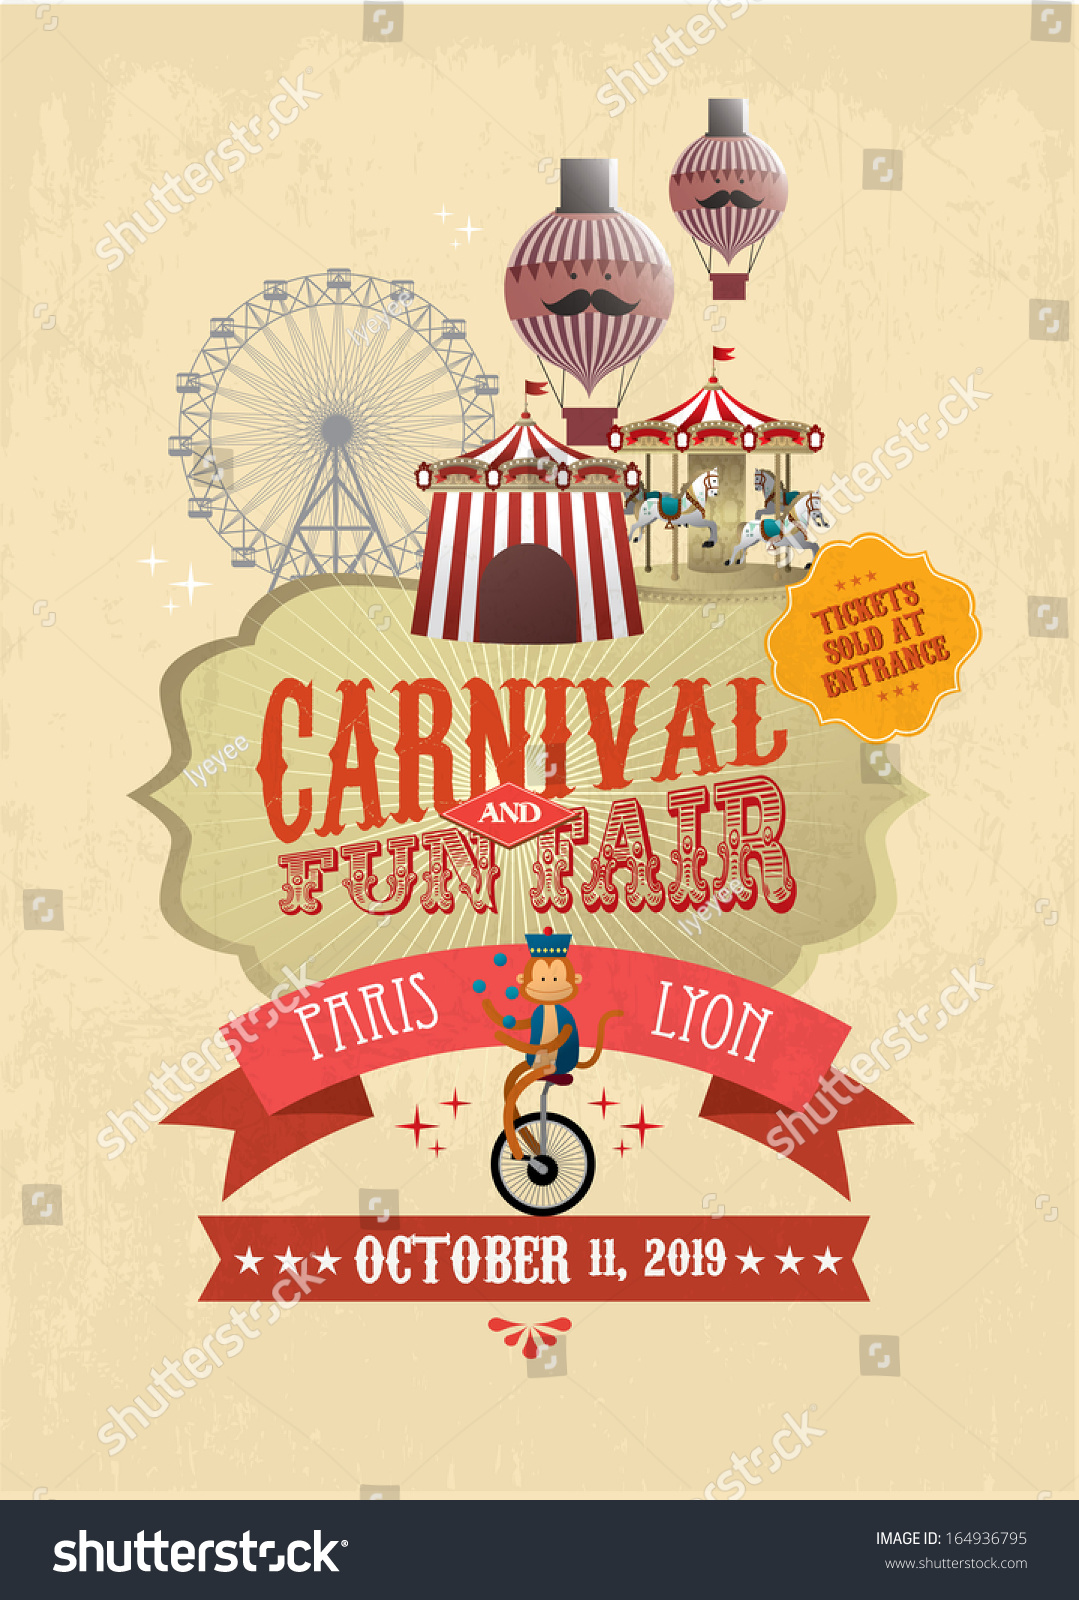 Vintage Carnival Fun Fair Fairground Circus Poster Template Vector Illustration